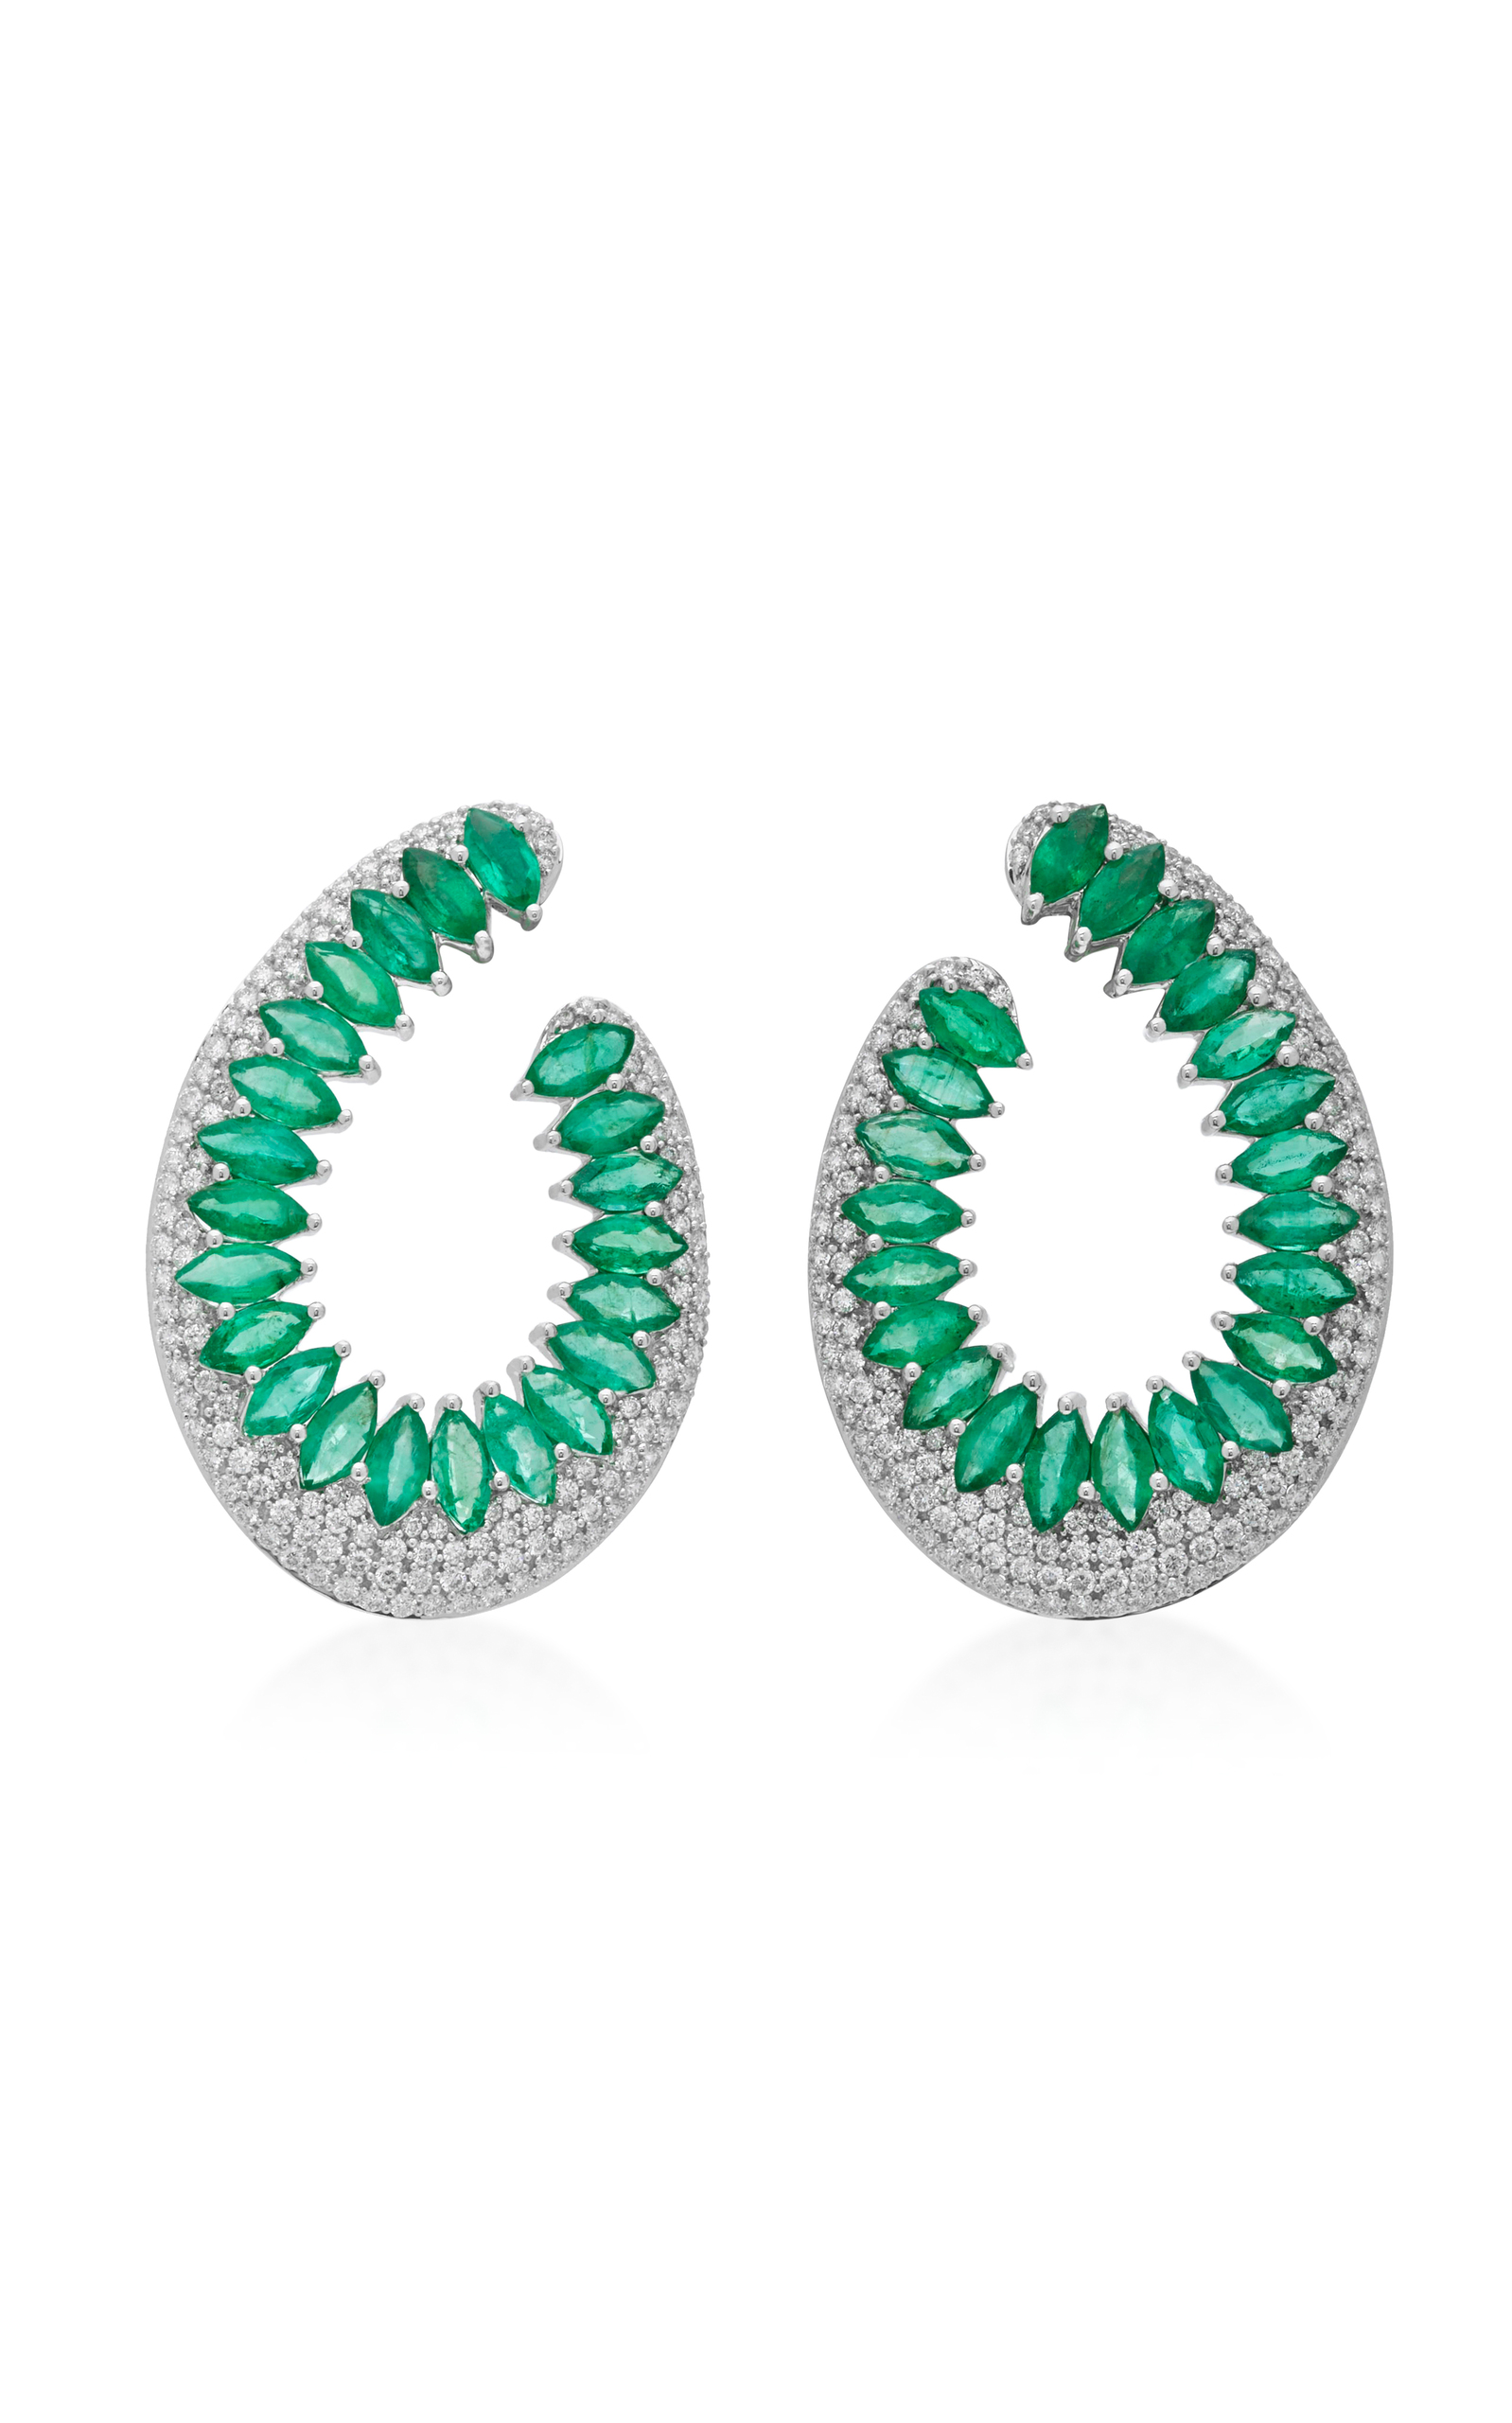 treasures description gold product jewellery previously diamond white emerald earrings loved